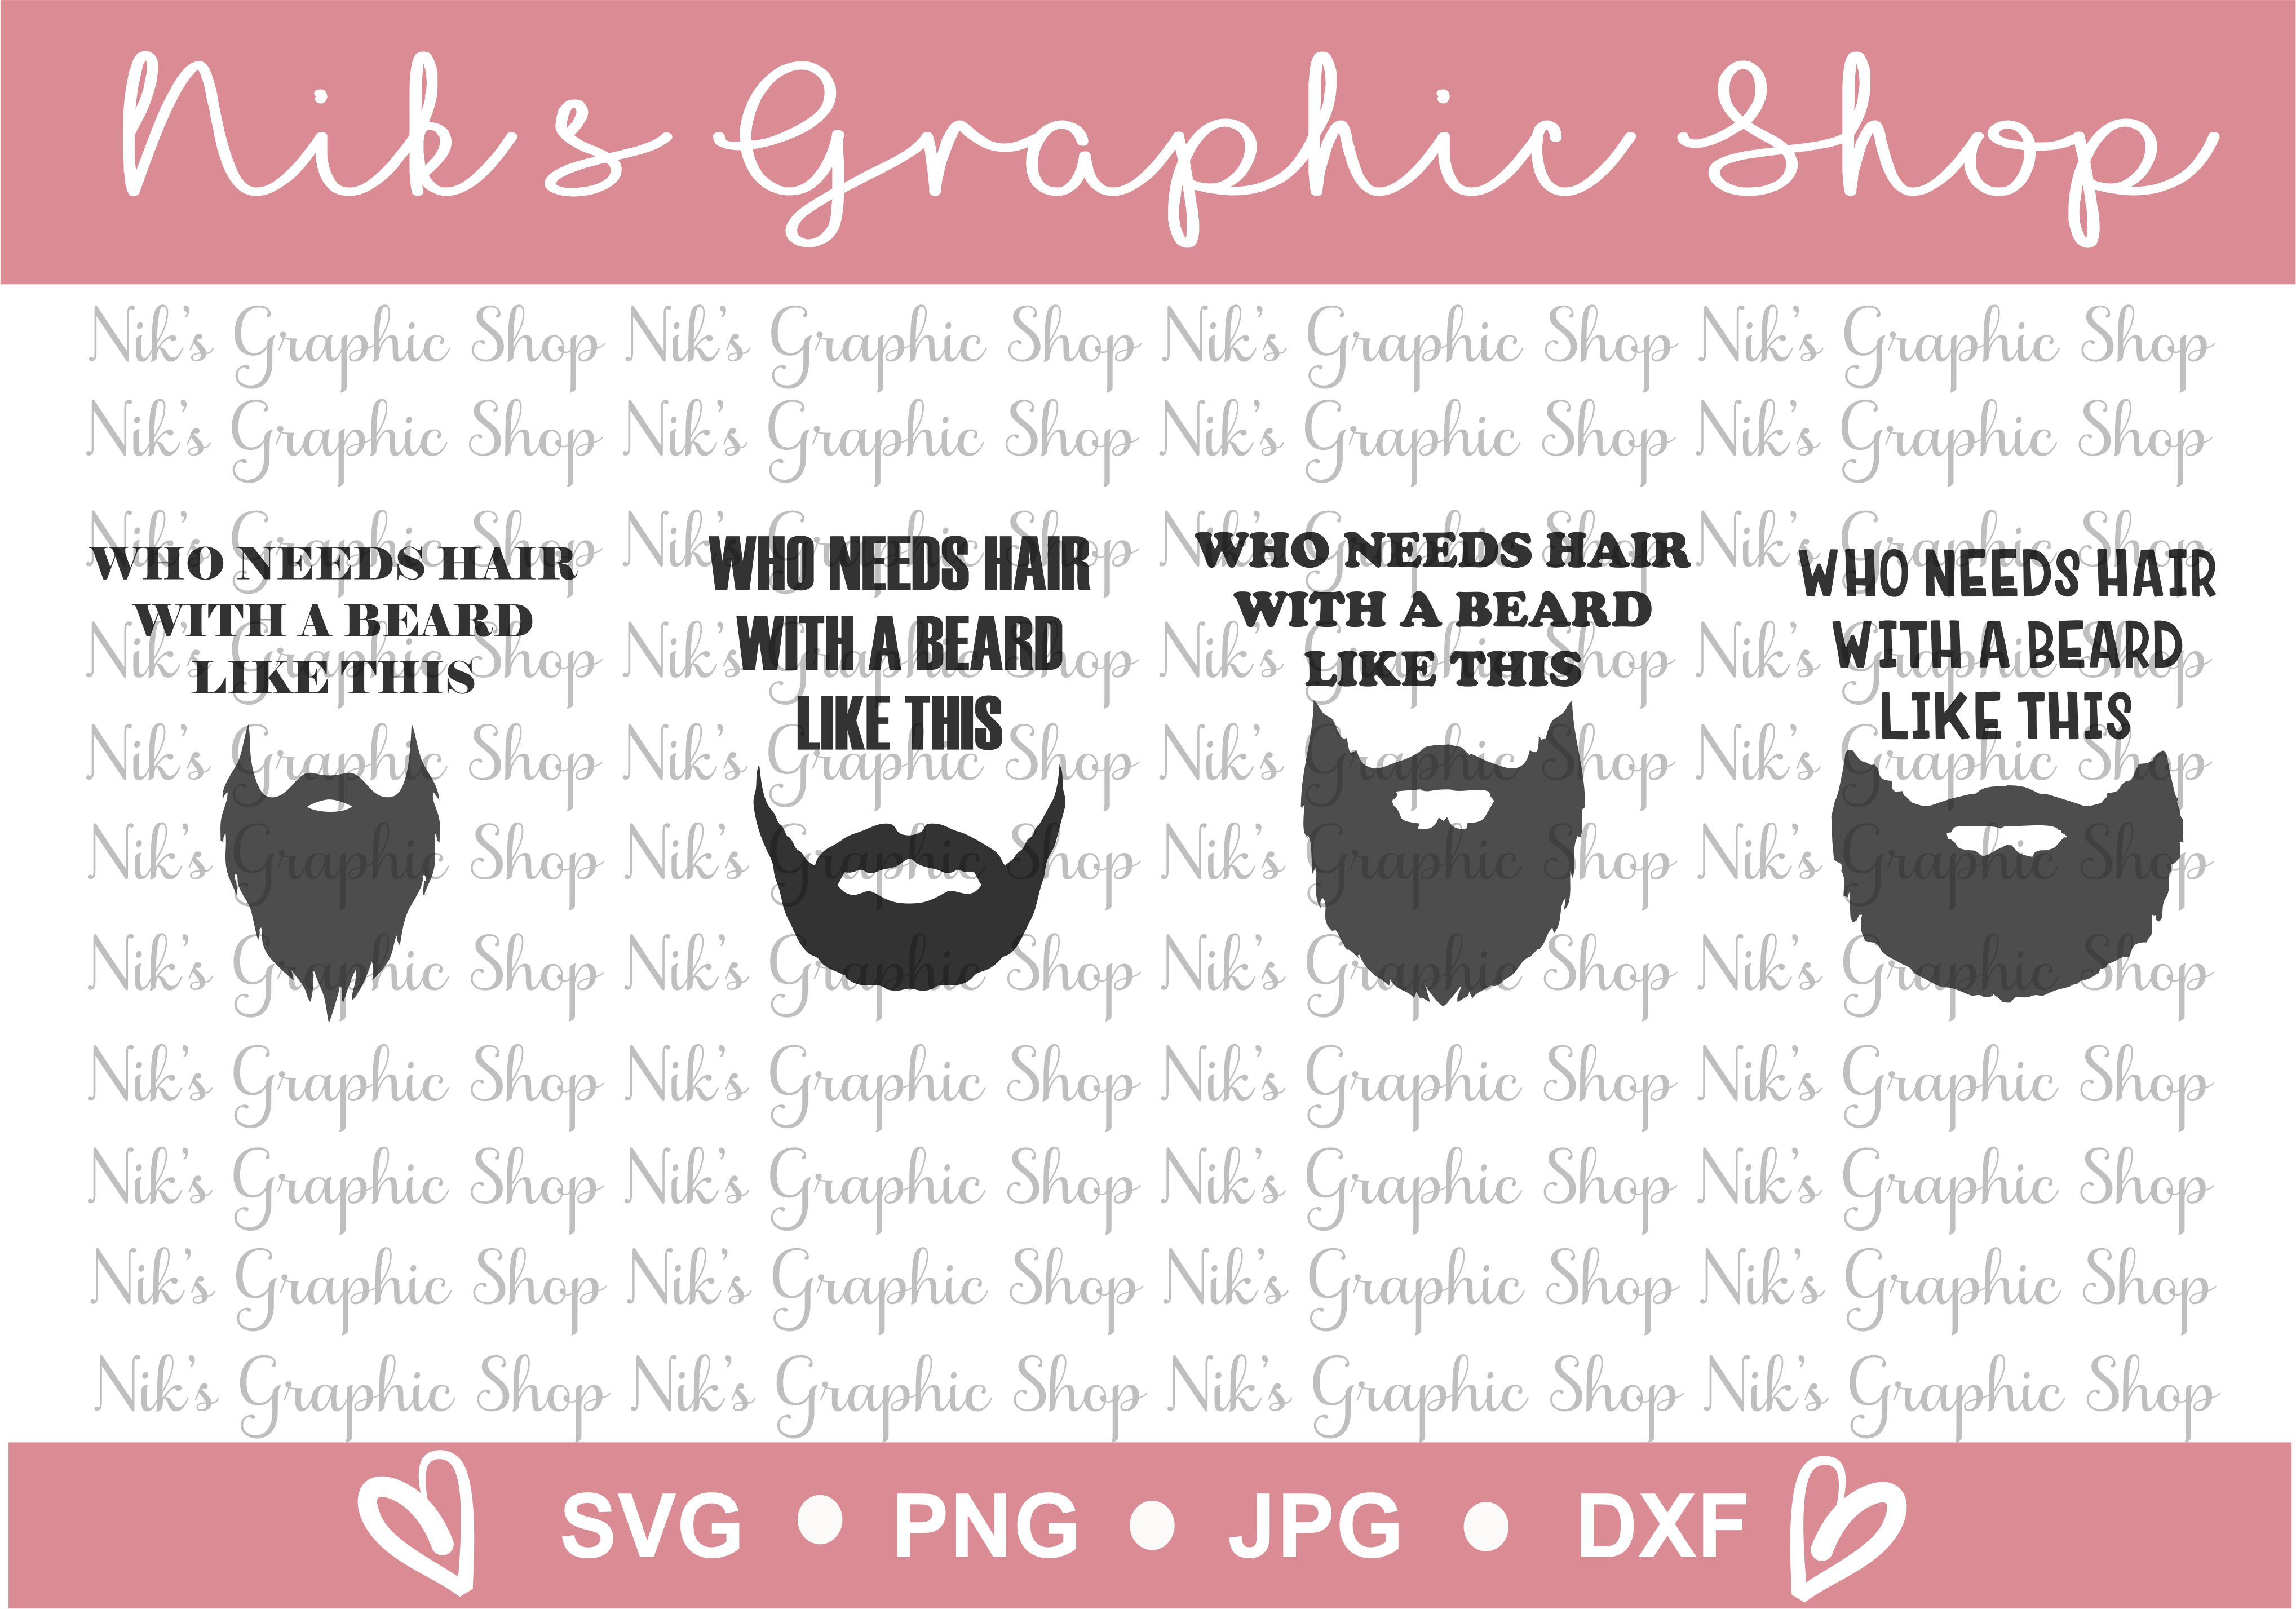 Beard SVG, Who needs hair, With a Beard like this, SVG, PNG, Cut files, Cricut, Silhouette, Funny Svg, Gift Ideas example image 1